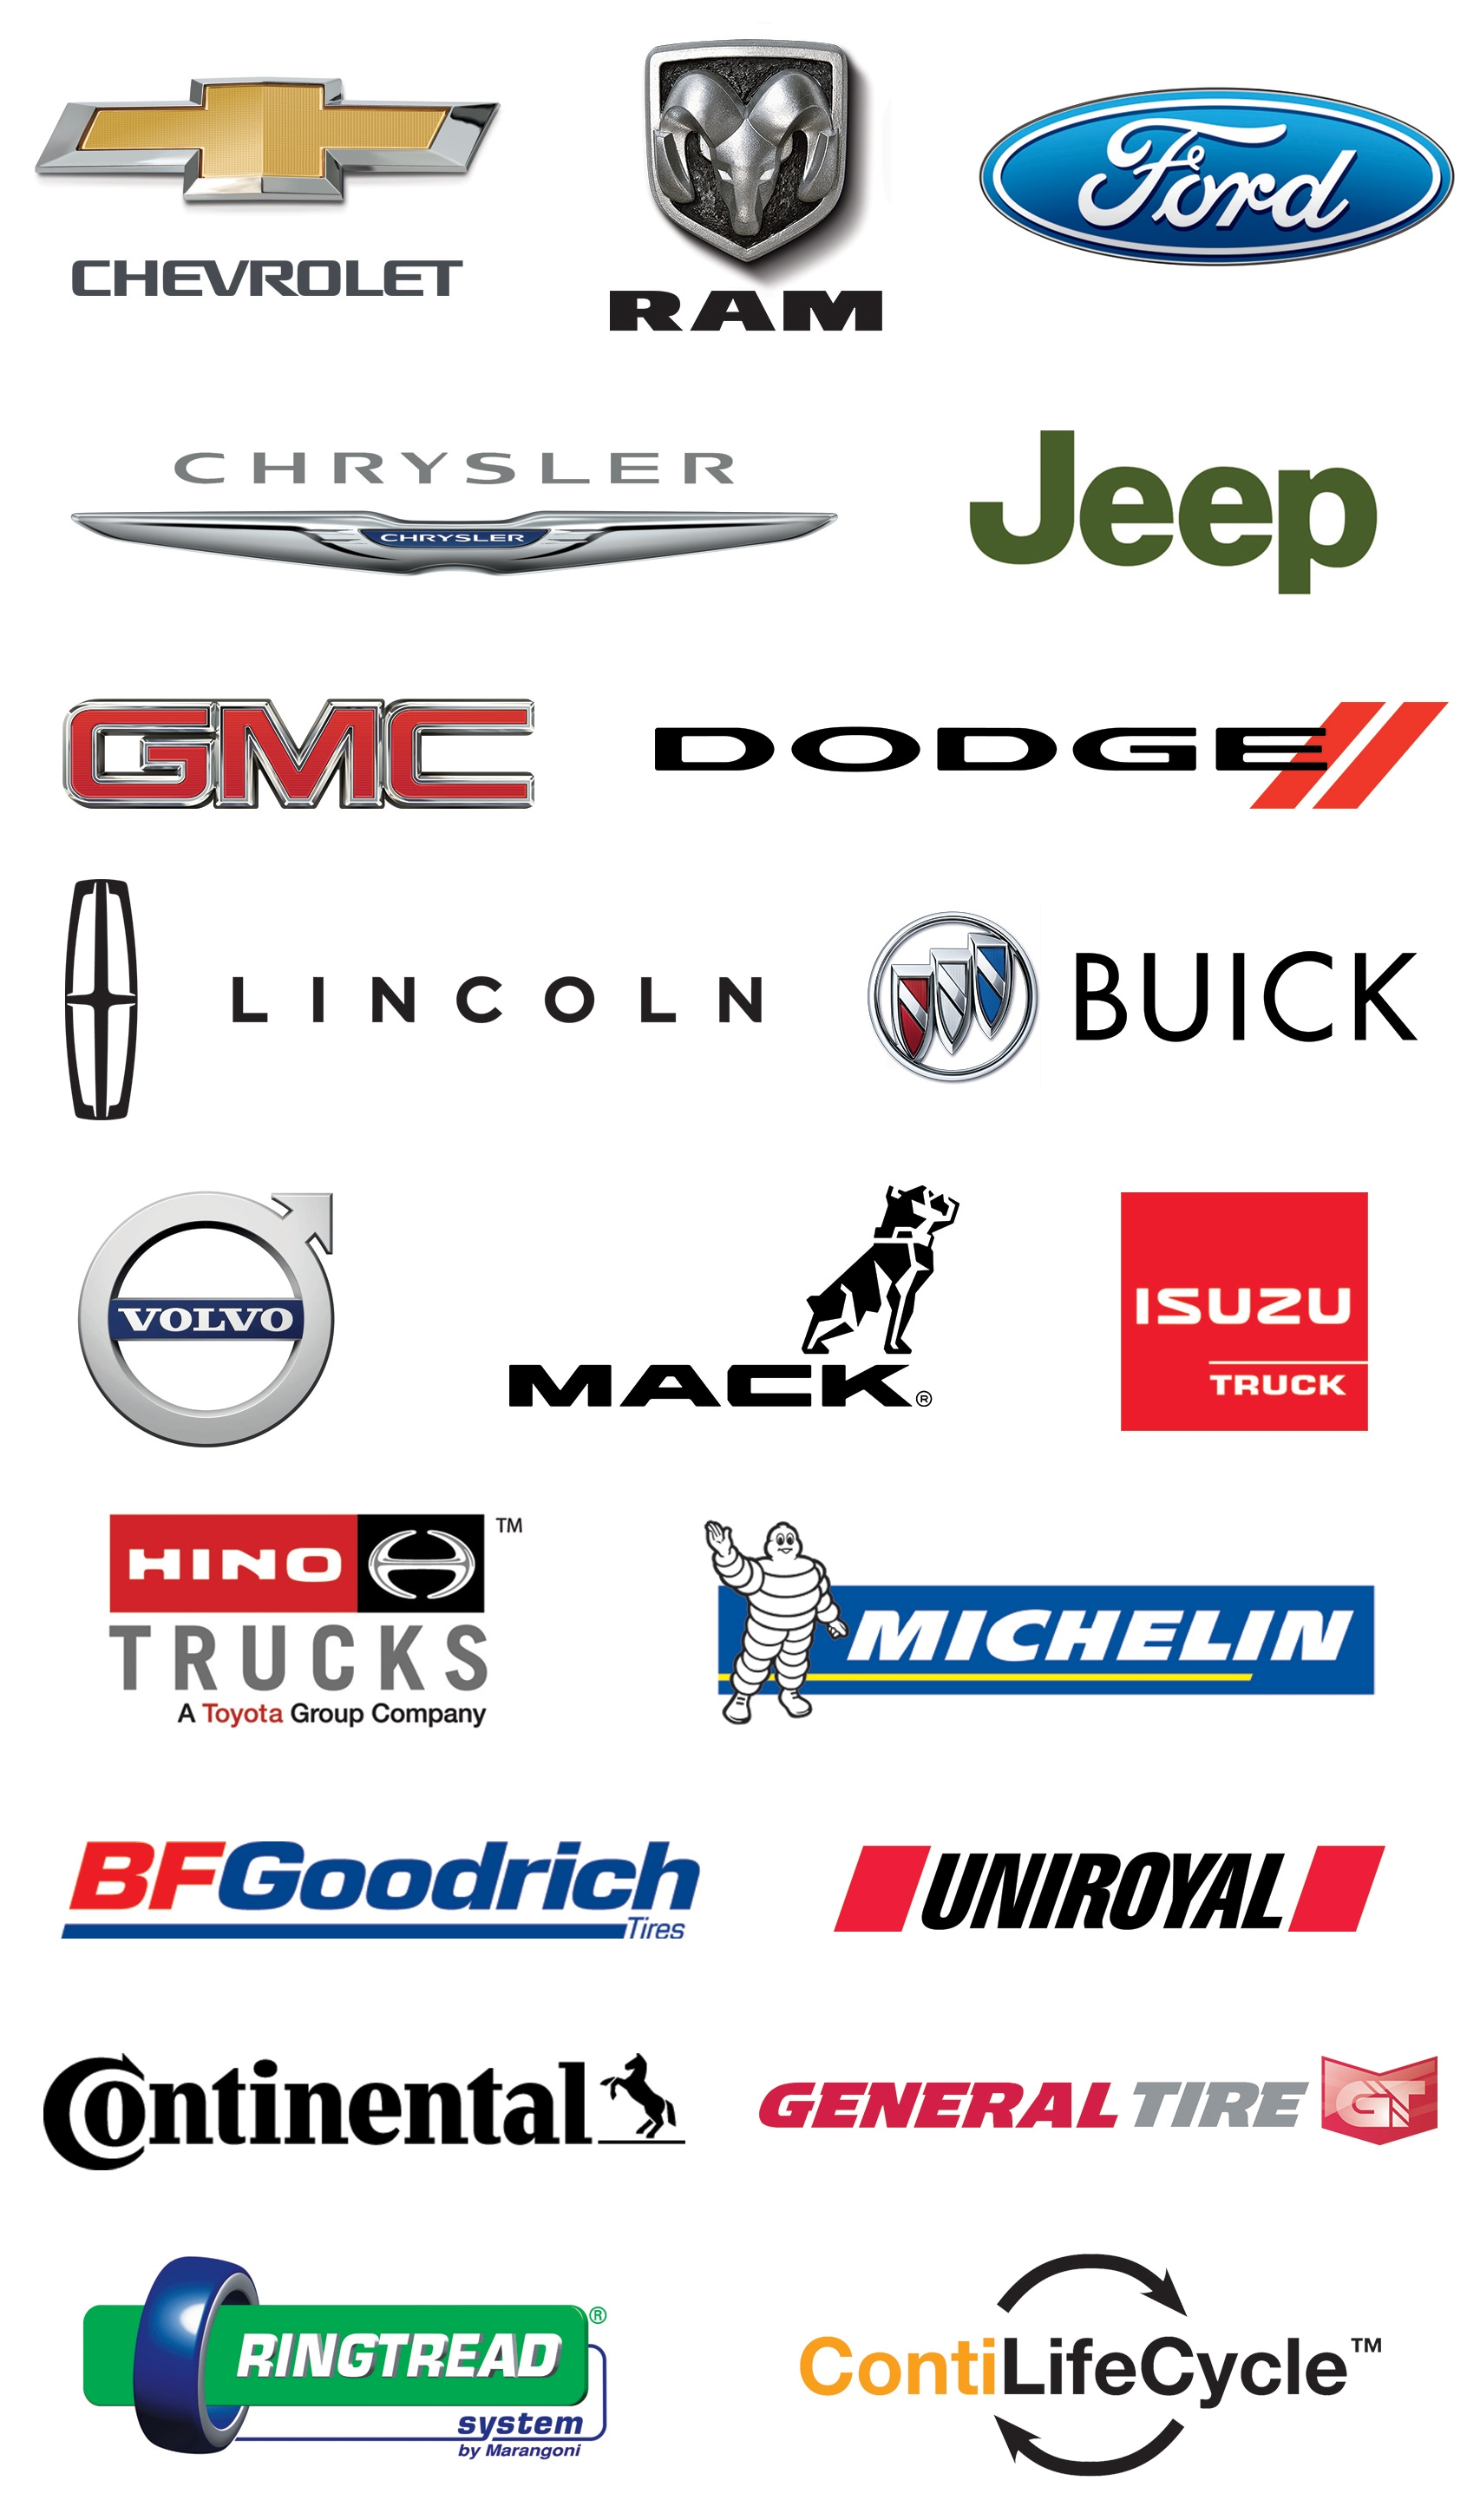 bergeys auto dealerships  dodge jeep gmc buick lincoln chevrolet ford chrysler ram